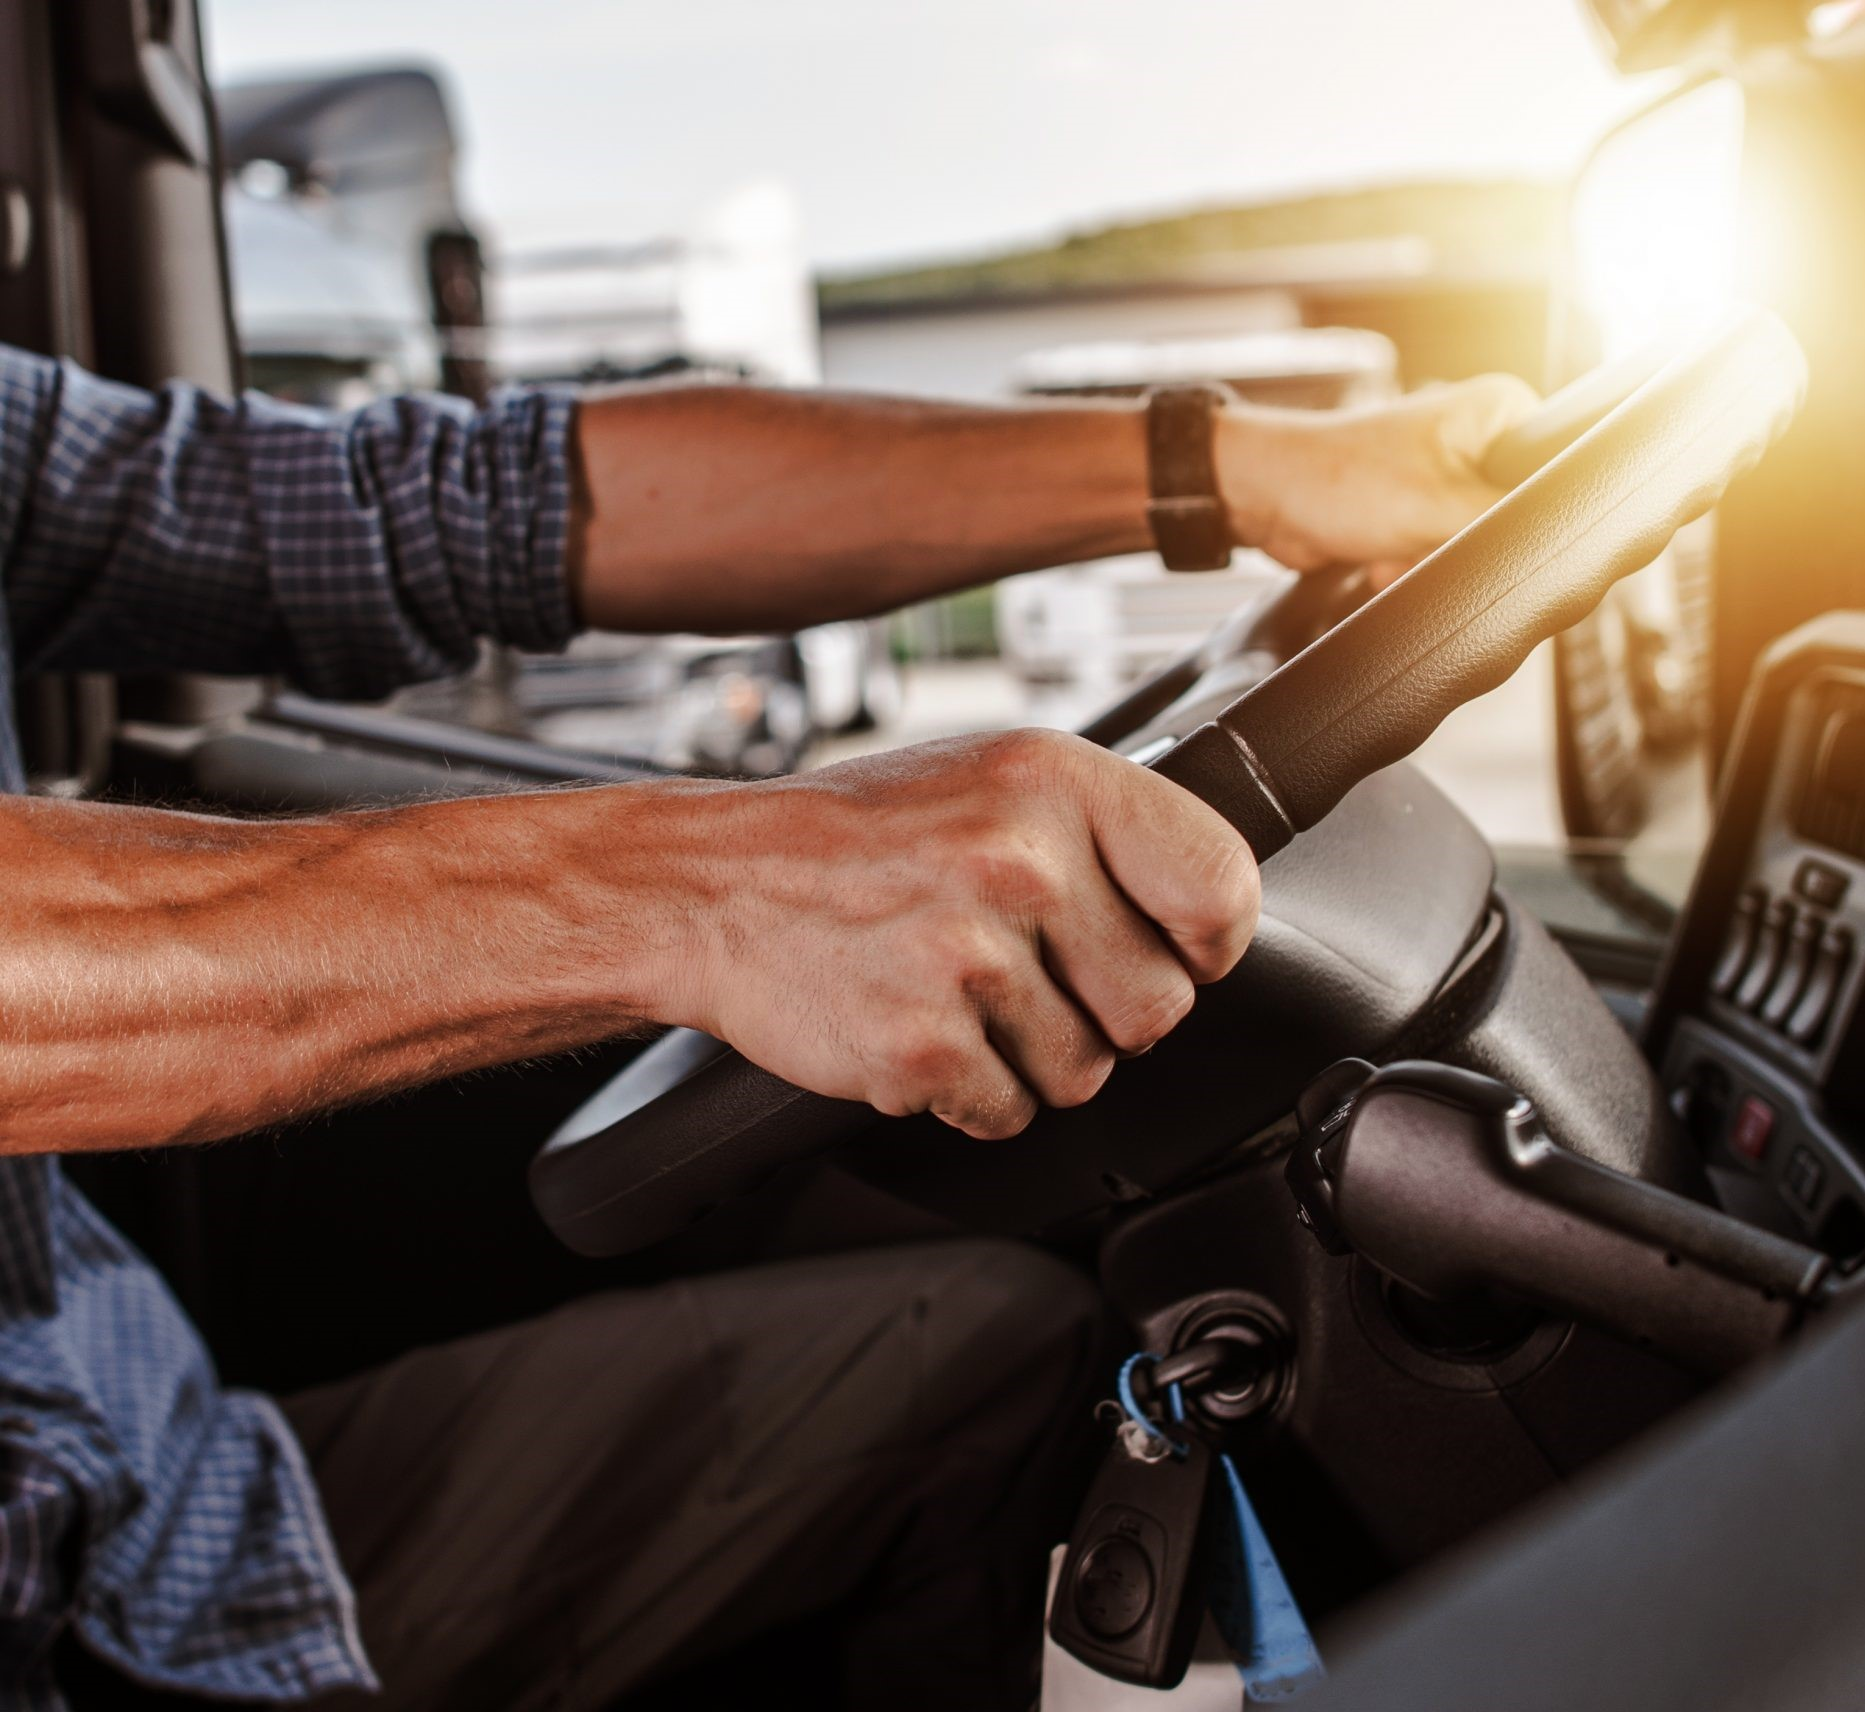 Truck driver hands on steering wheel close scaled